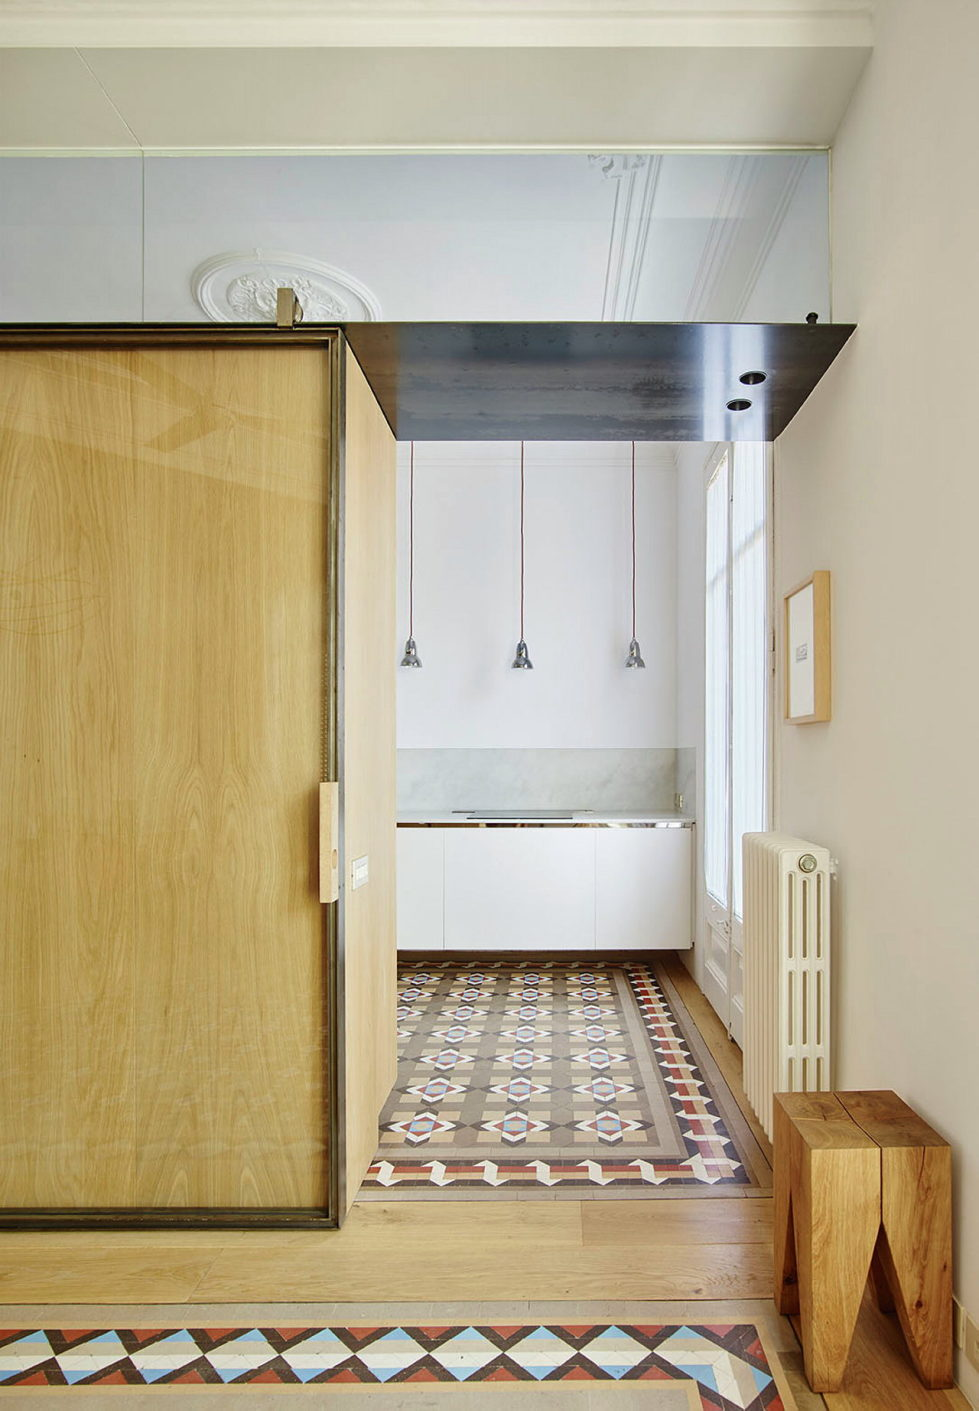 AB House 19th-century Barcelona apartment by Built Architecture 15